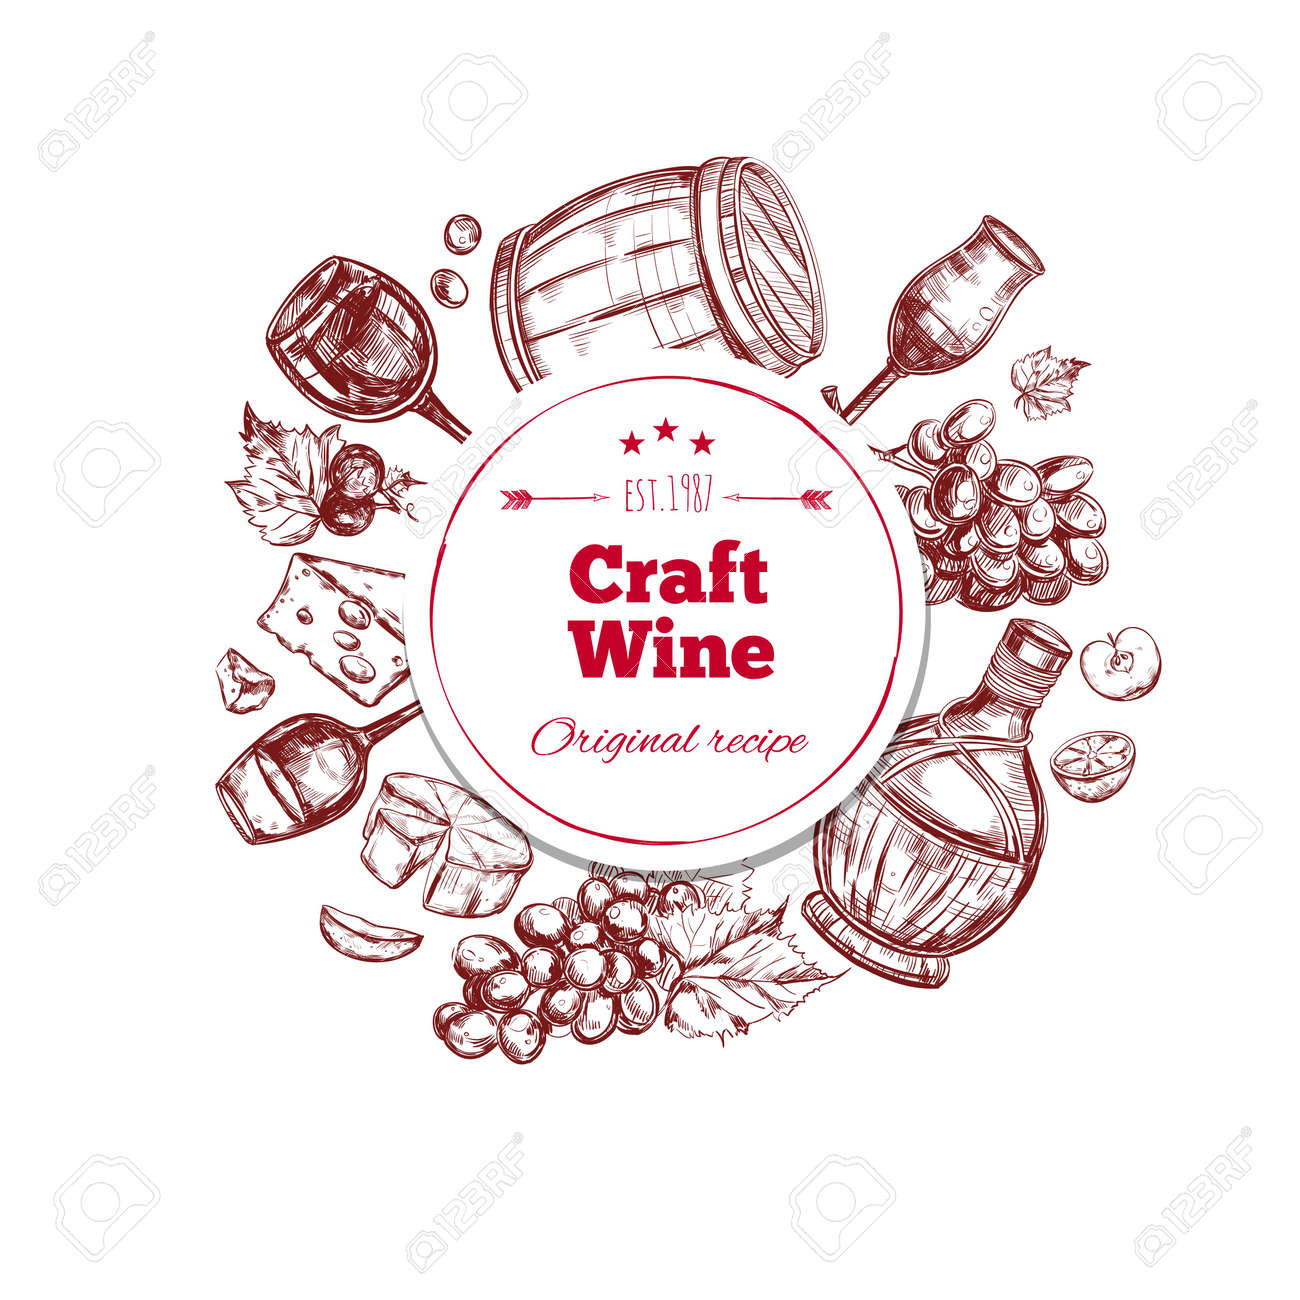 Red wine craft production concept with ingredients barrel bottle and glass in hand drawn style isolated vector illustration - 166617191